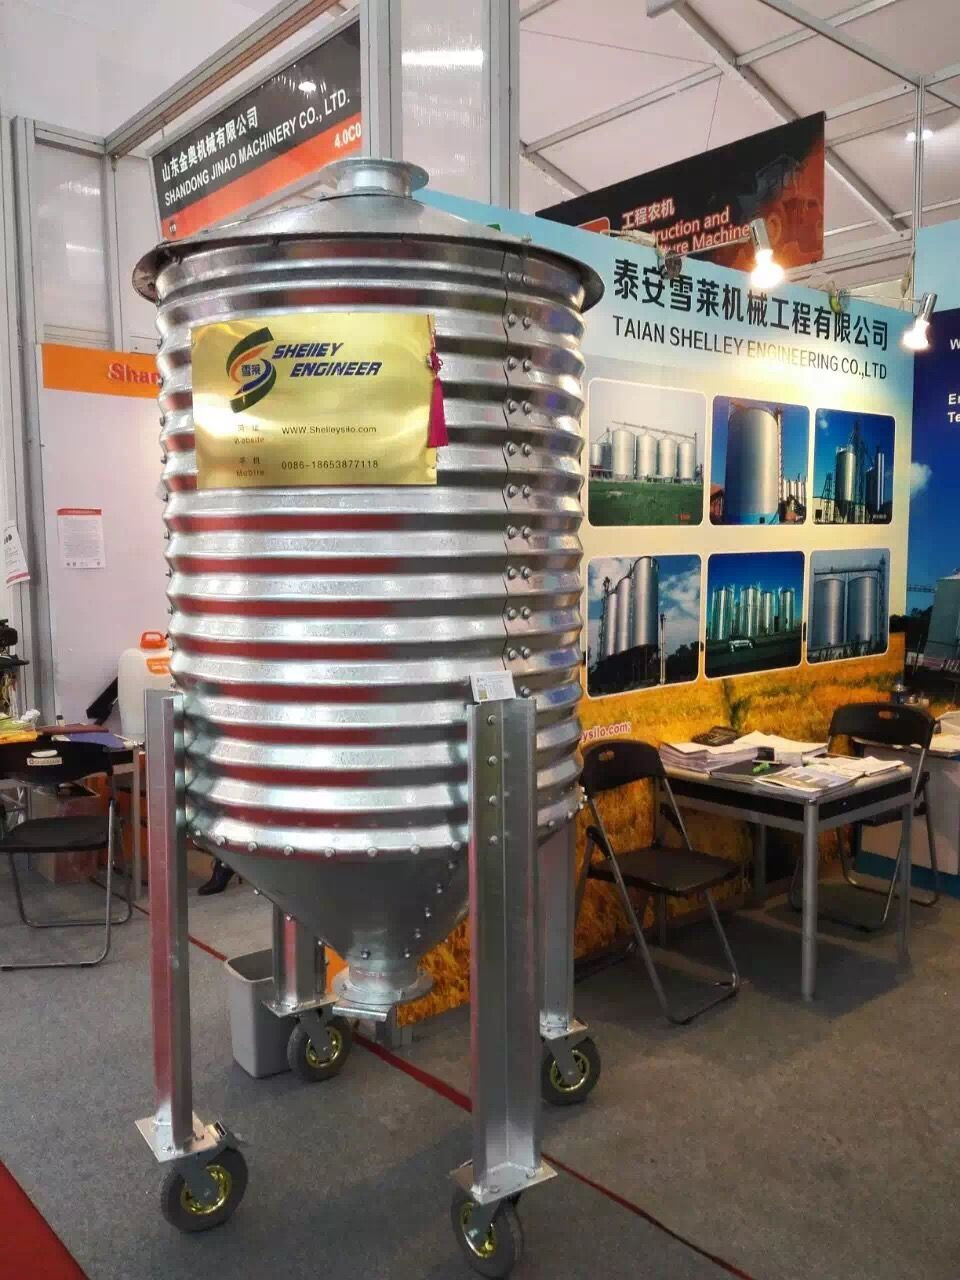 medium resolution of this is 1ton mini silo used for grain pellet or any other materials pellets this 1 ton mini silo is made of galvanized steel sheet and it s movable type